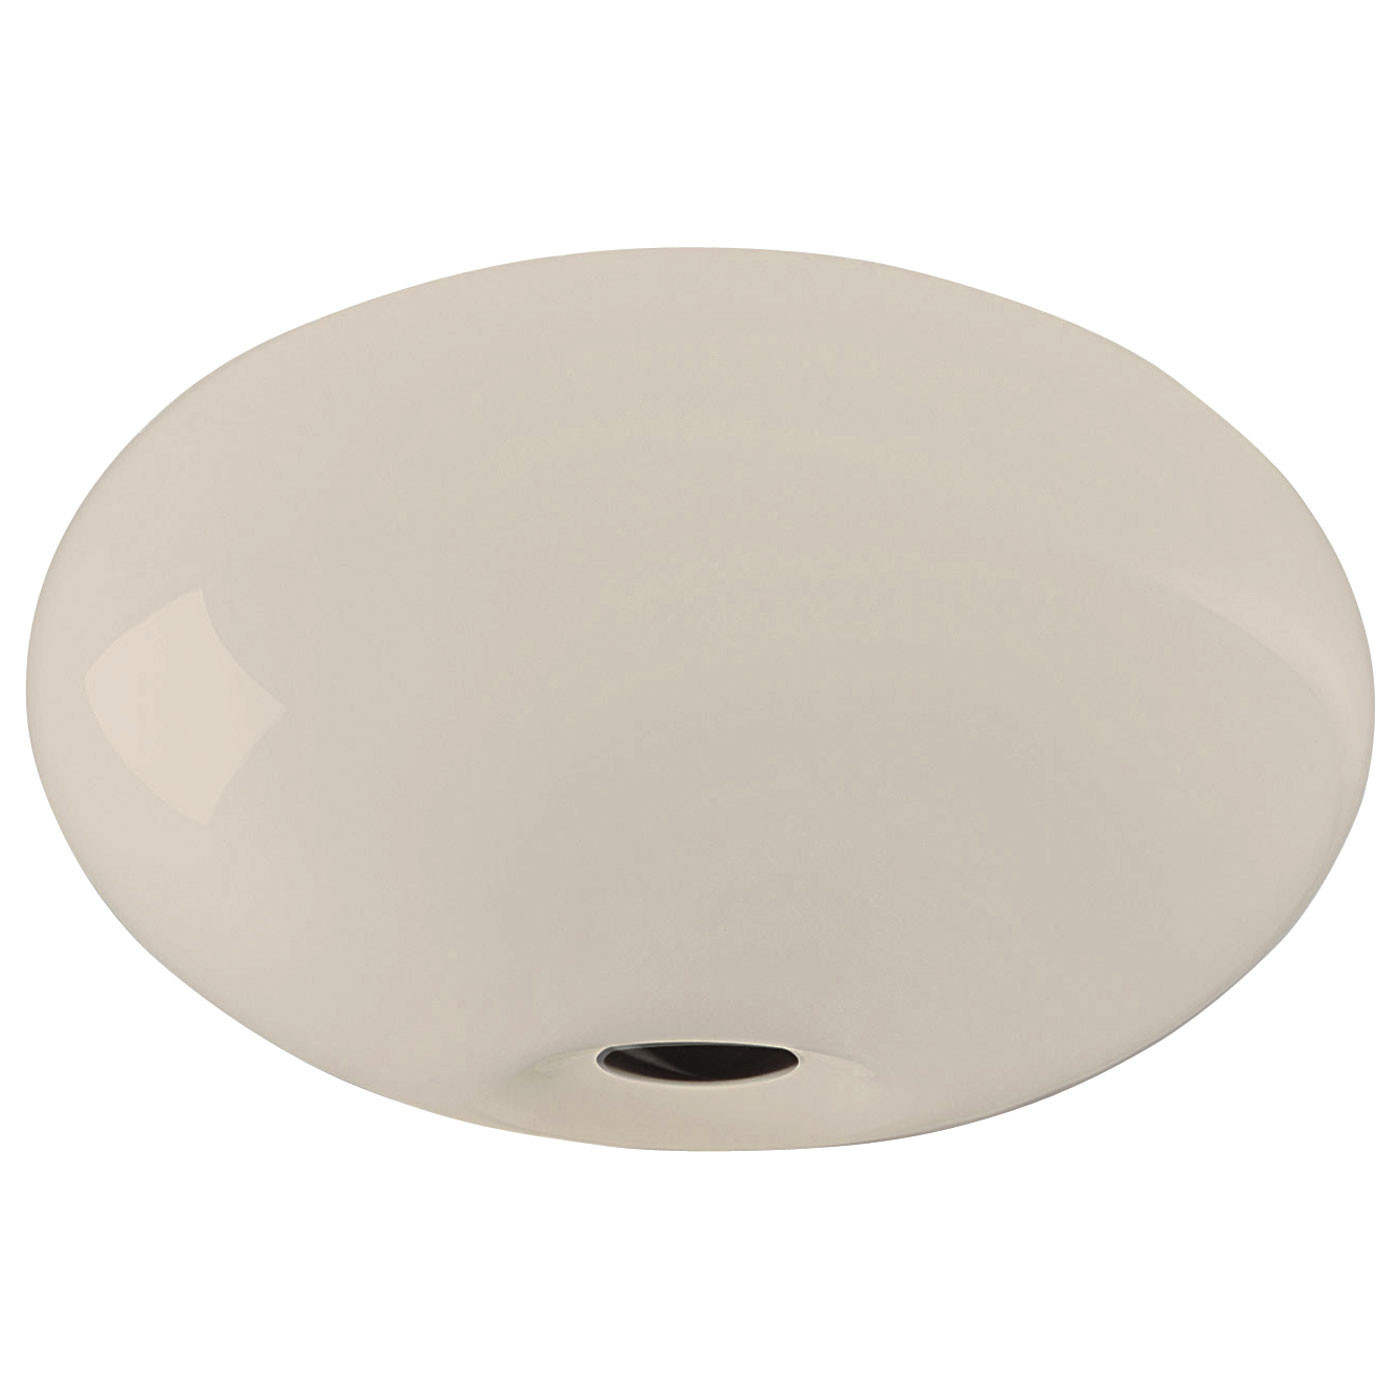 Casablanca AIH Ceiling Light